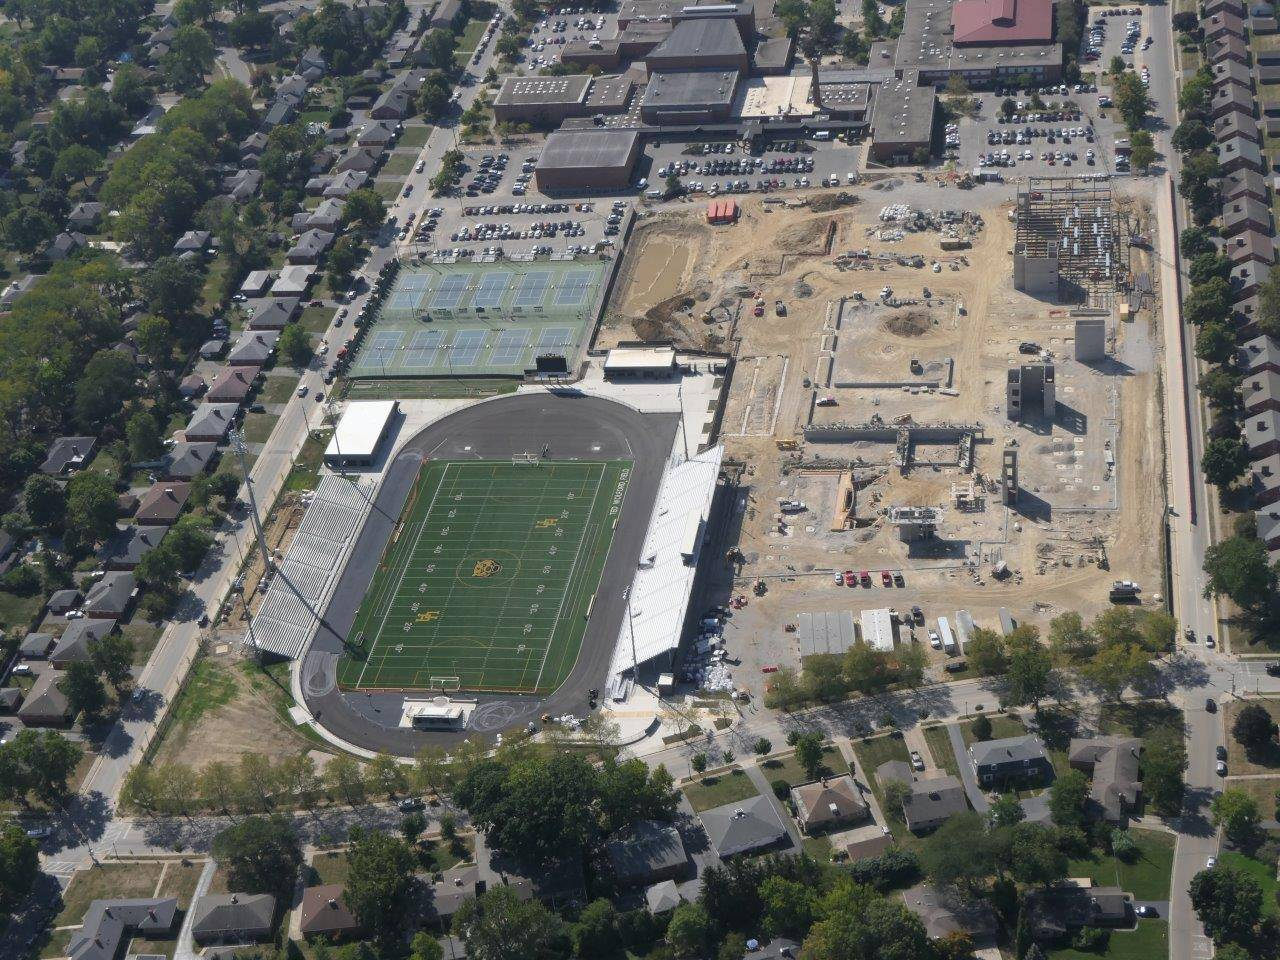 An aerial of the Upper Arlington High School site looking south